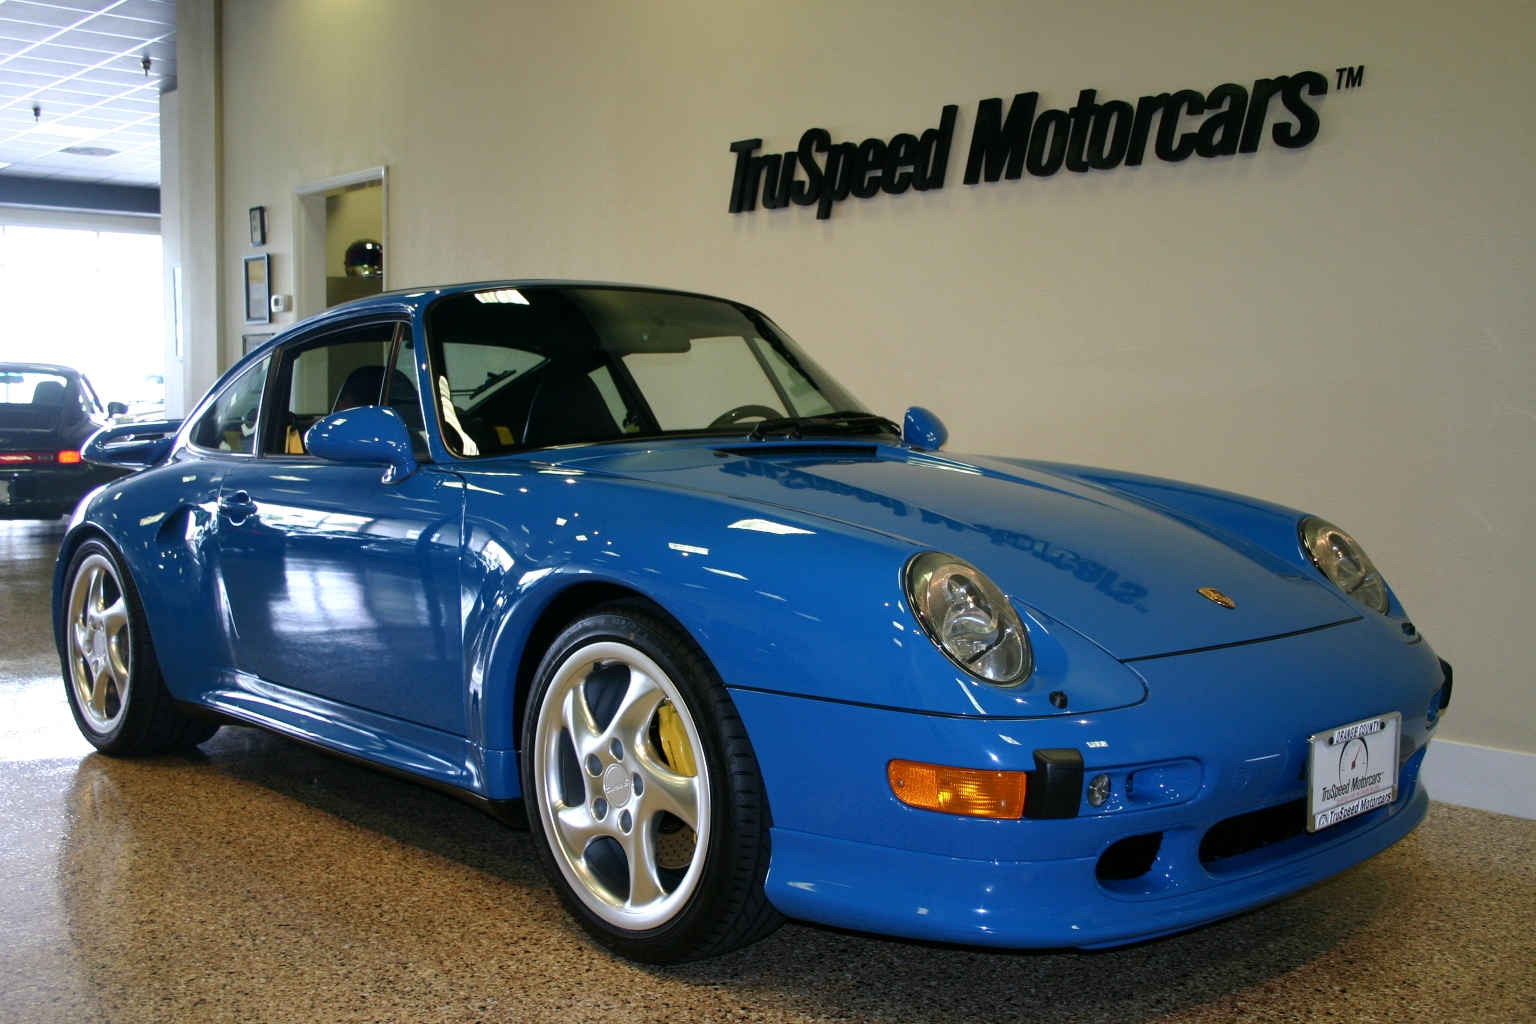 A blue Porsche 933 is another one of Jerry's beloved cars. The beautiful car has a small frame and large headlights